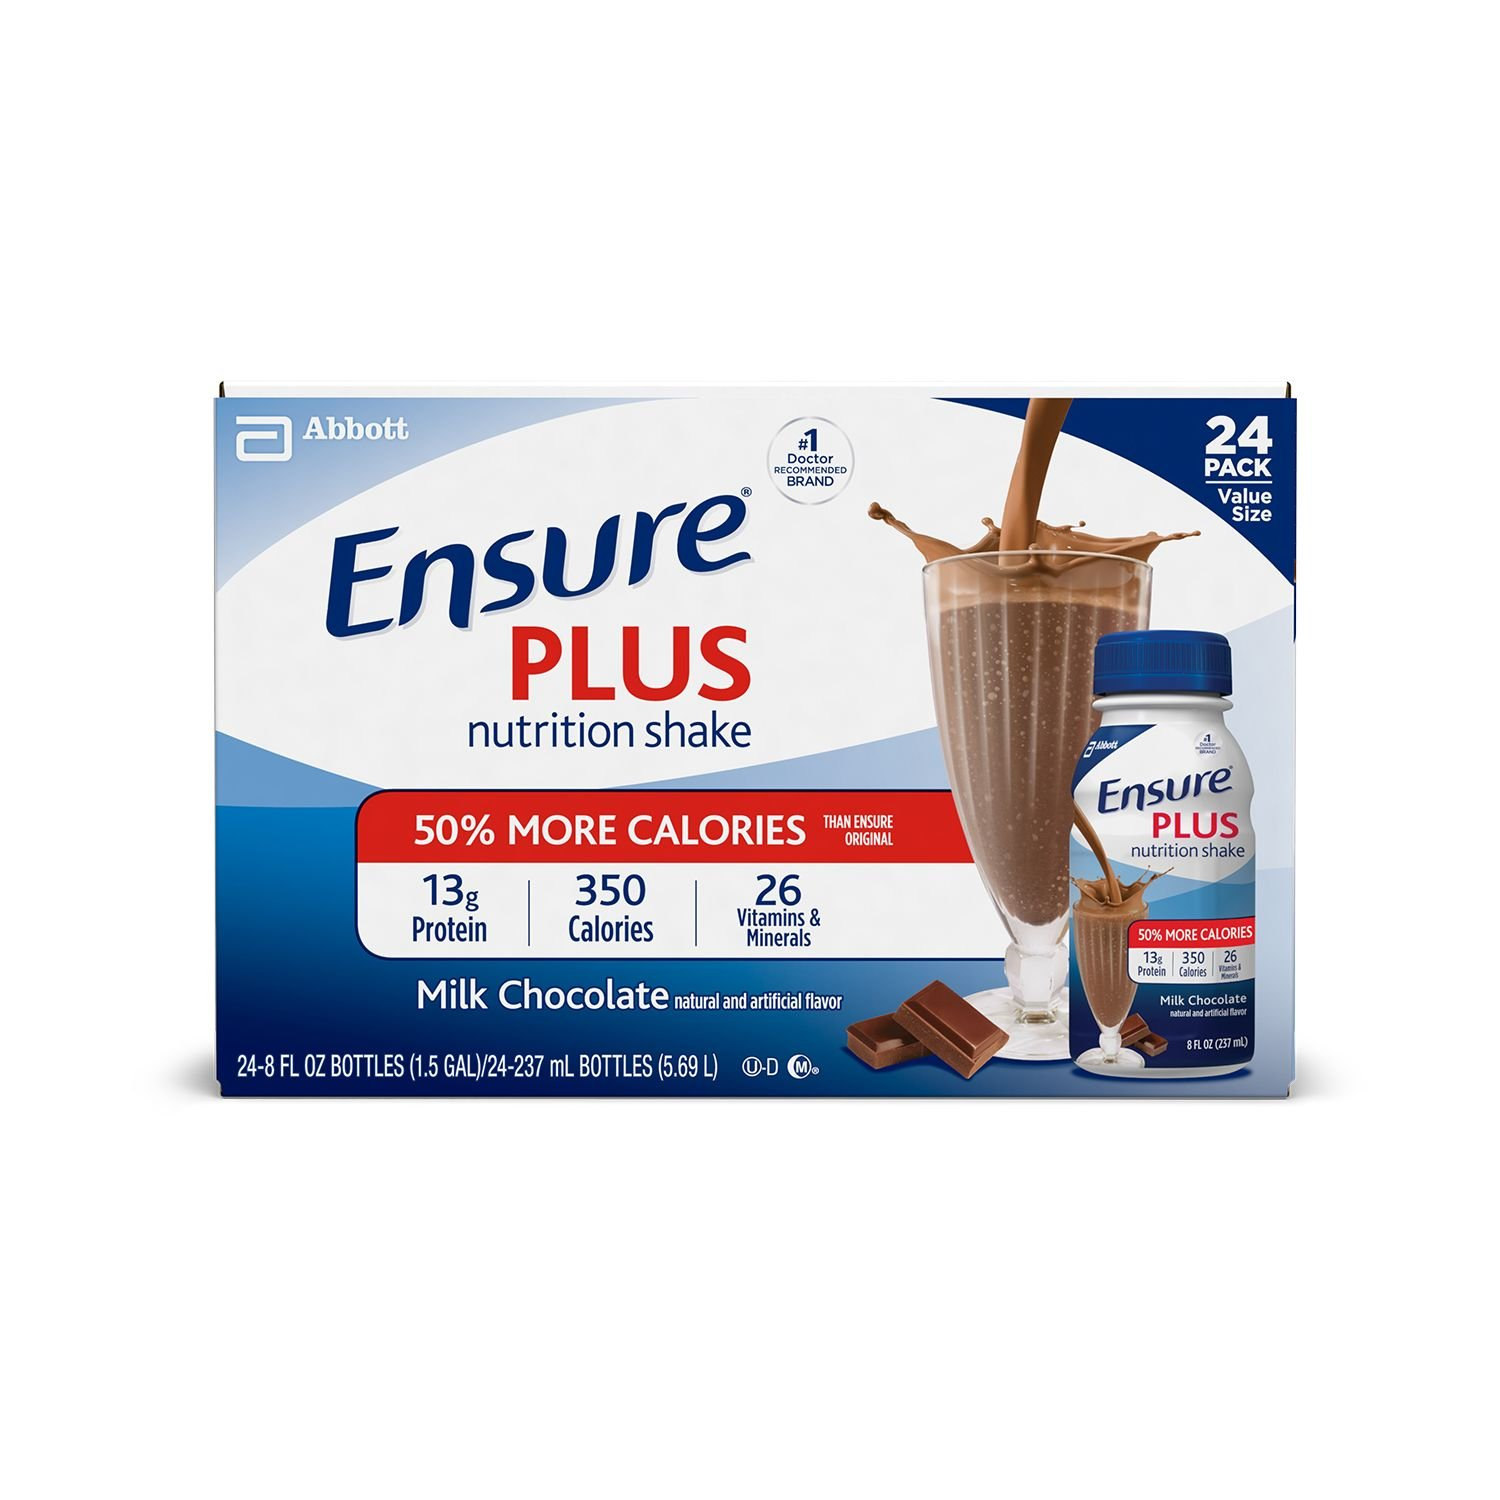 Ensure Plus Creamy Milk Chocolate Shake (8 oz. bottle, 24 pk.) (pack of 6)